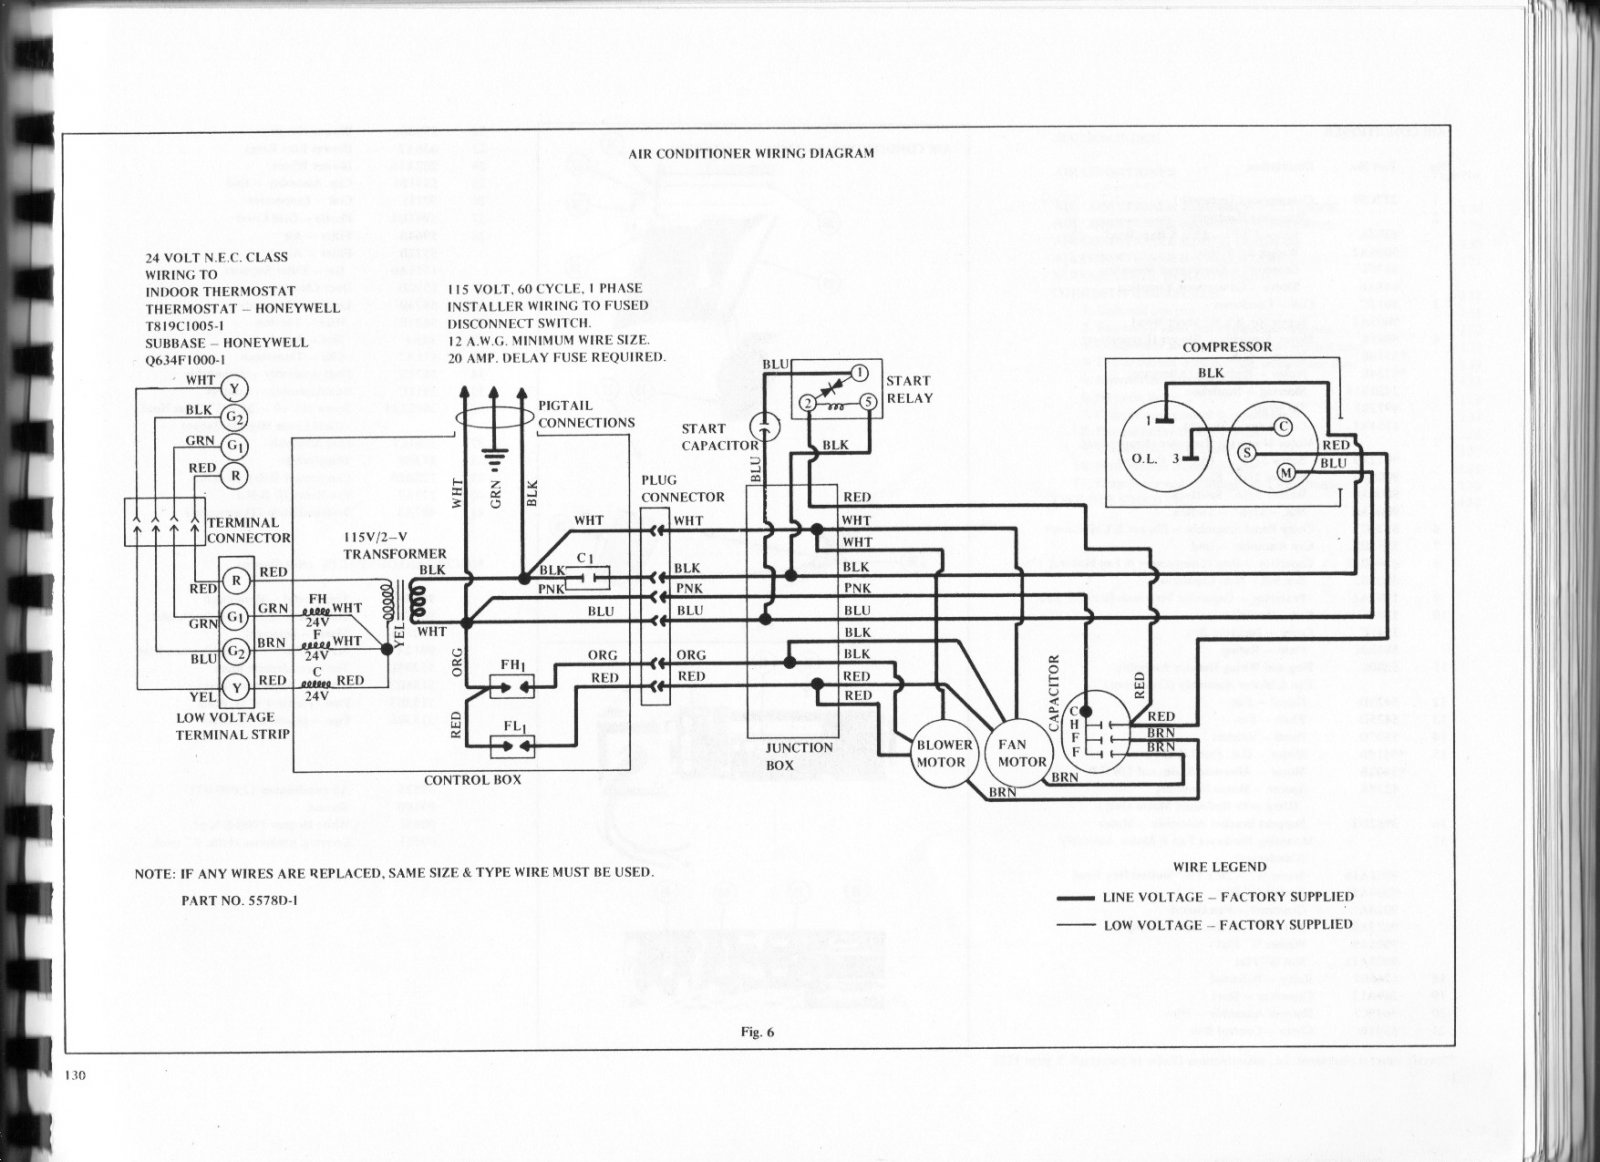 Delay Box Wiring Diagram Pole Relay F Fuse Layout Jayco Schematics Caravan Battery Wire